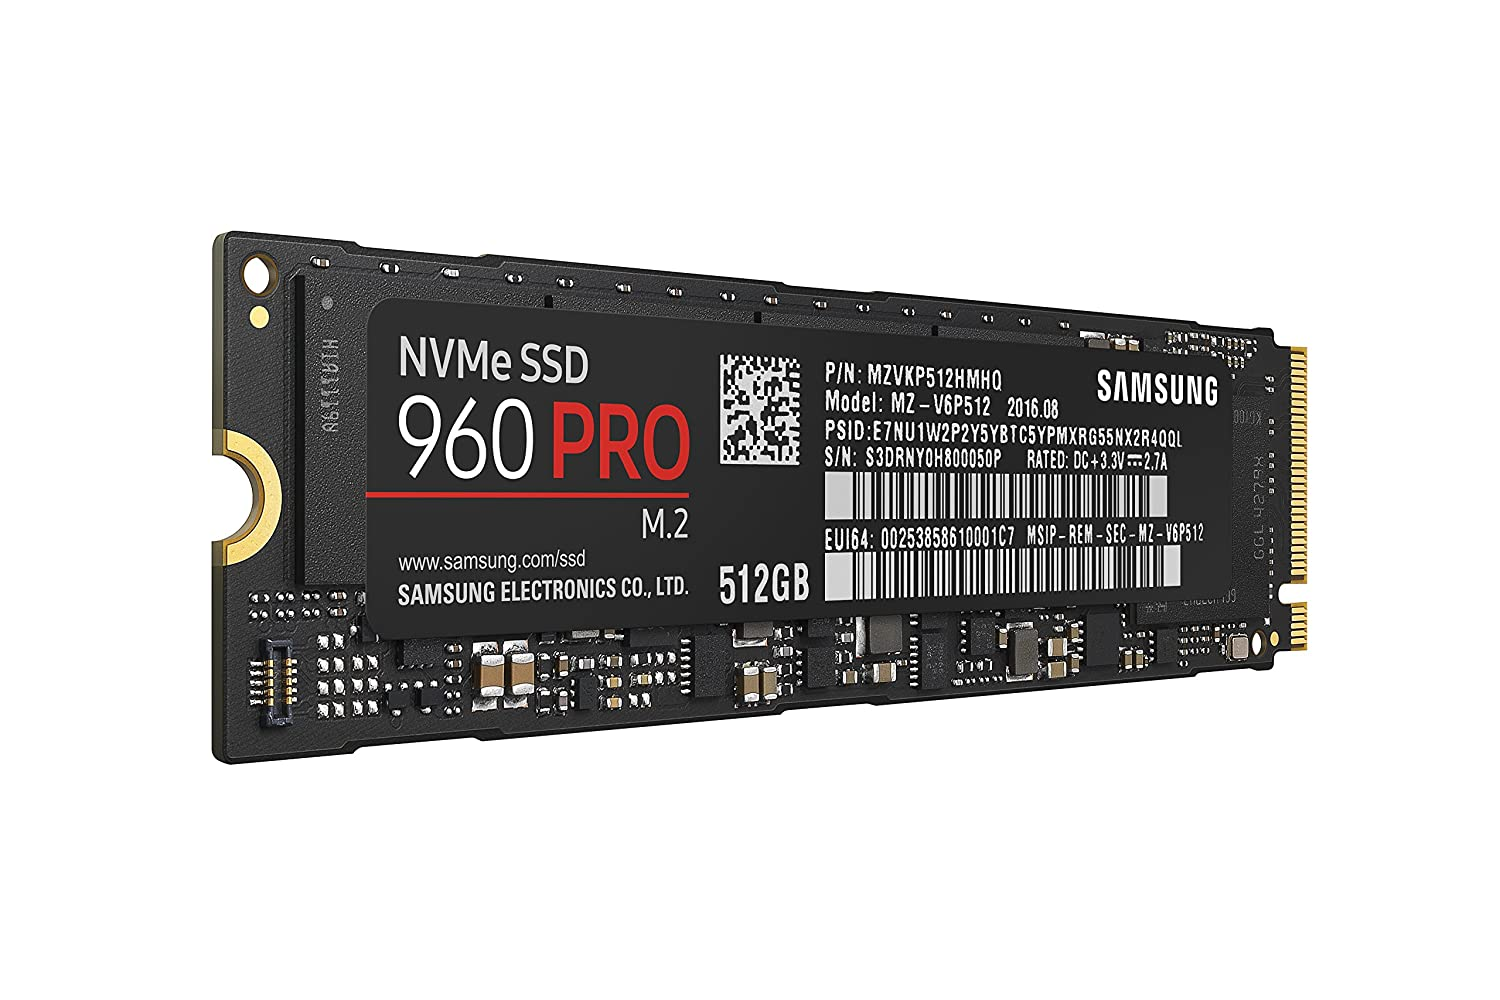 Samsung 960 Pro 512GB Review - Much faster storage